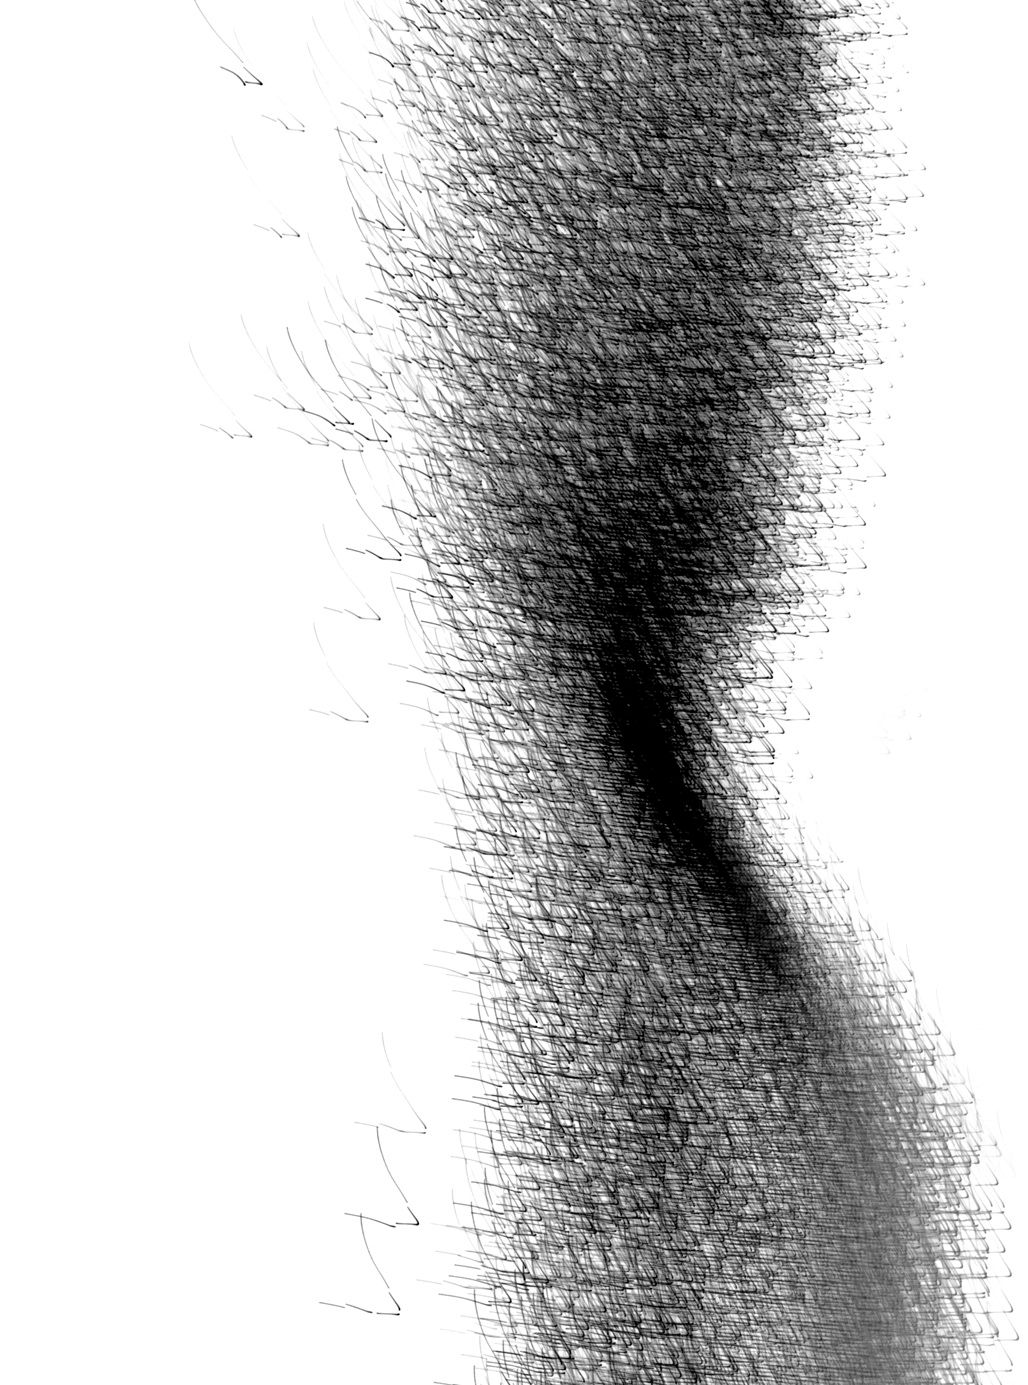 Untitled-IBM, 2011, Black and White Abstract Photography, Shirine Gill